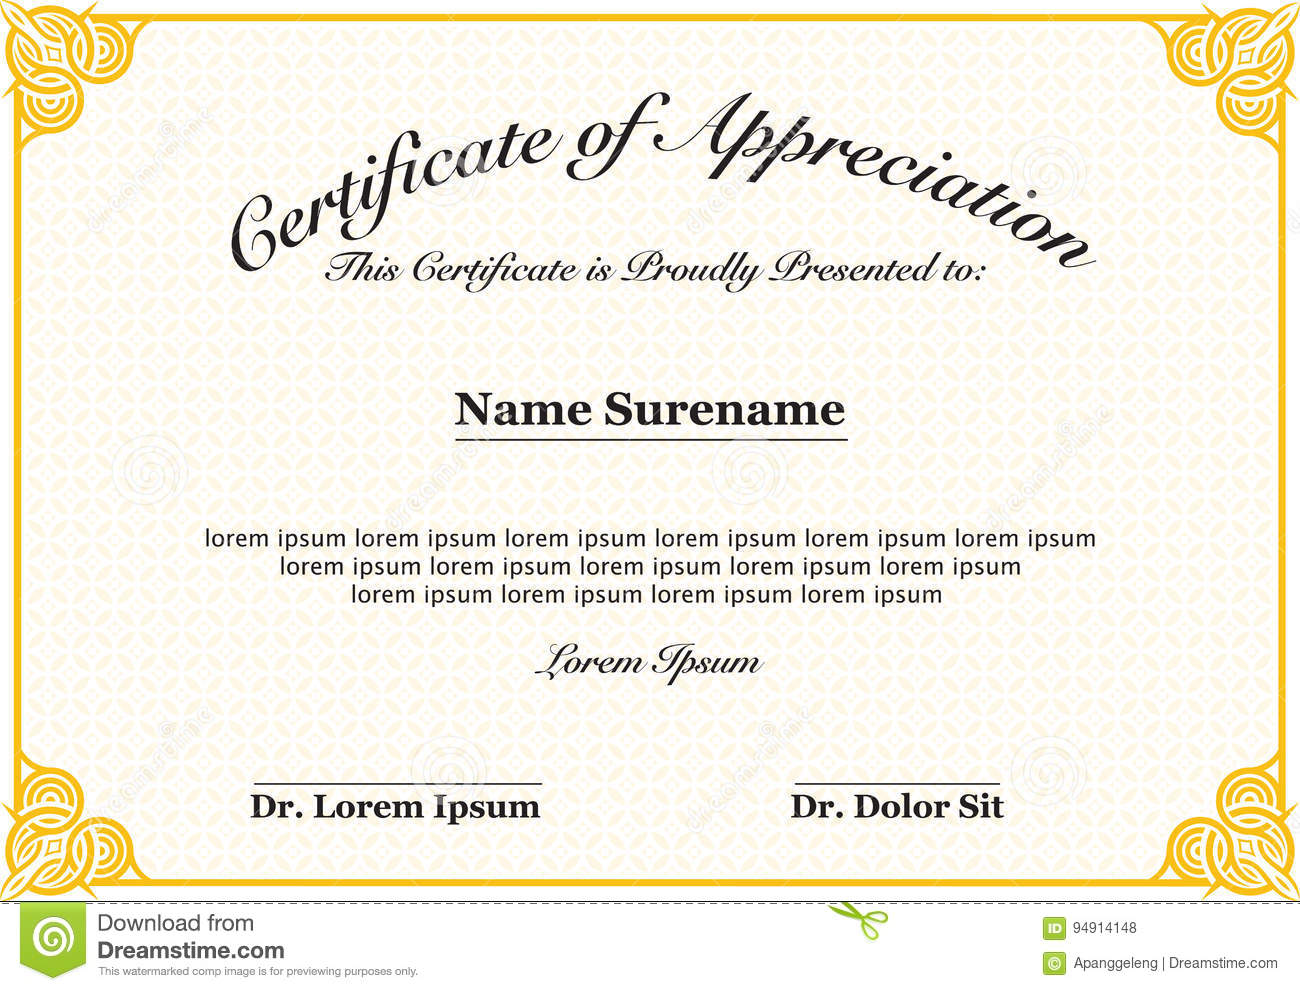 certificate of appreciation stock vector illustration of editable